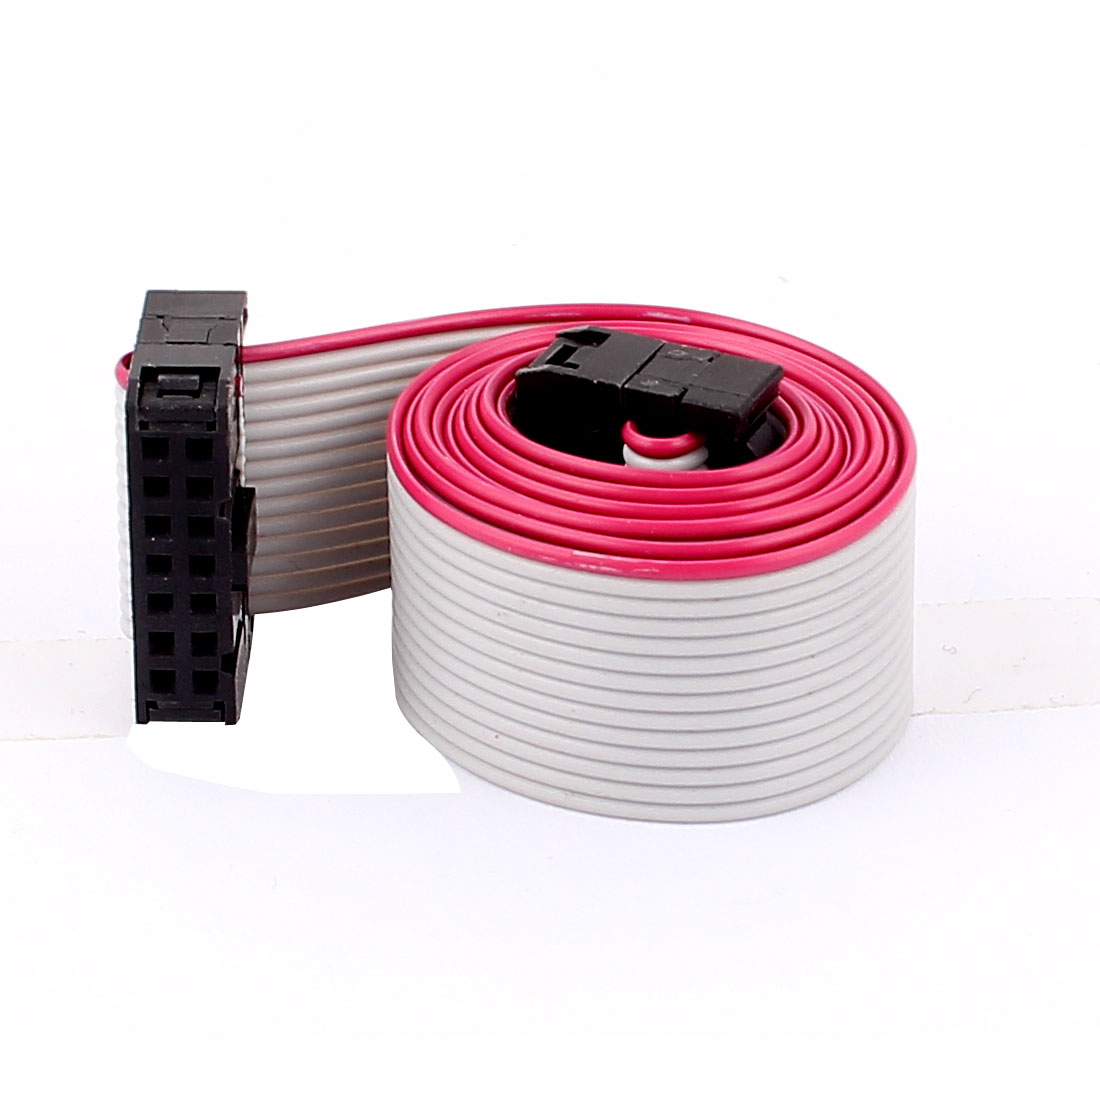 2.54mm Pitch 14 Pins 14 Wires F/F IDC Connector Flat Ribbon Cable 66cm Long